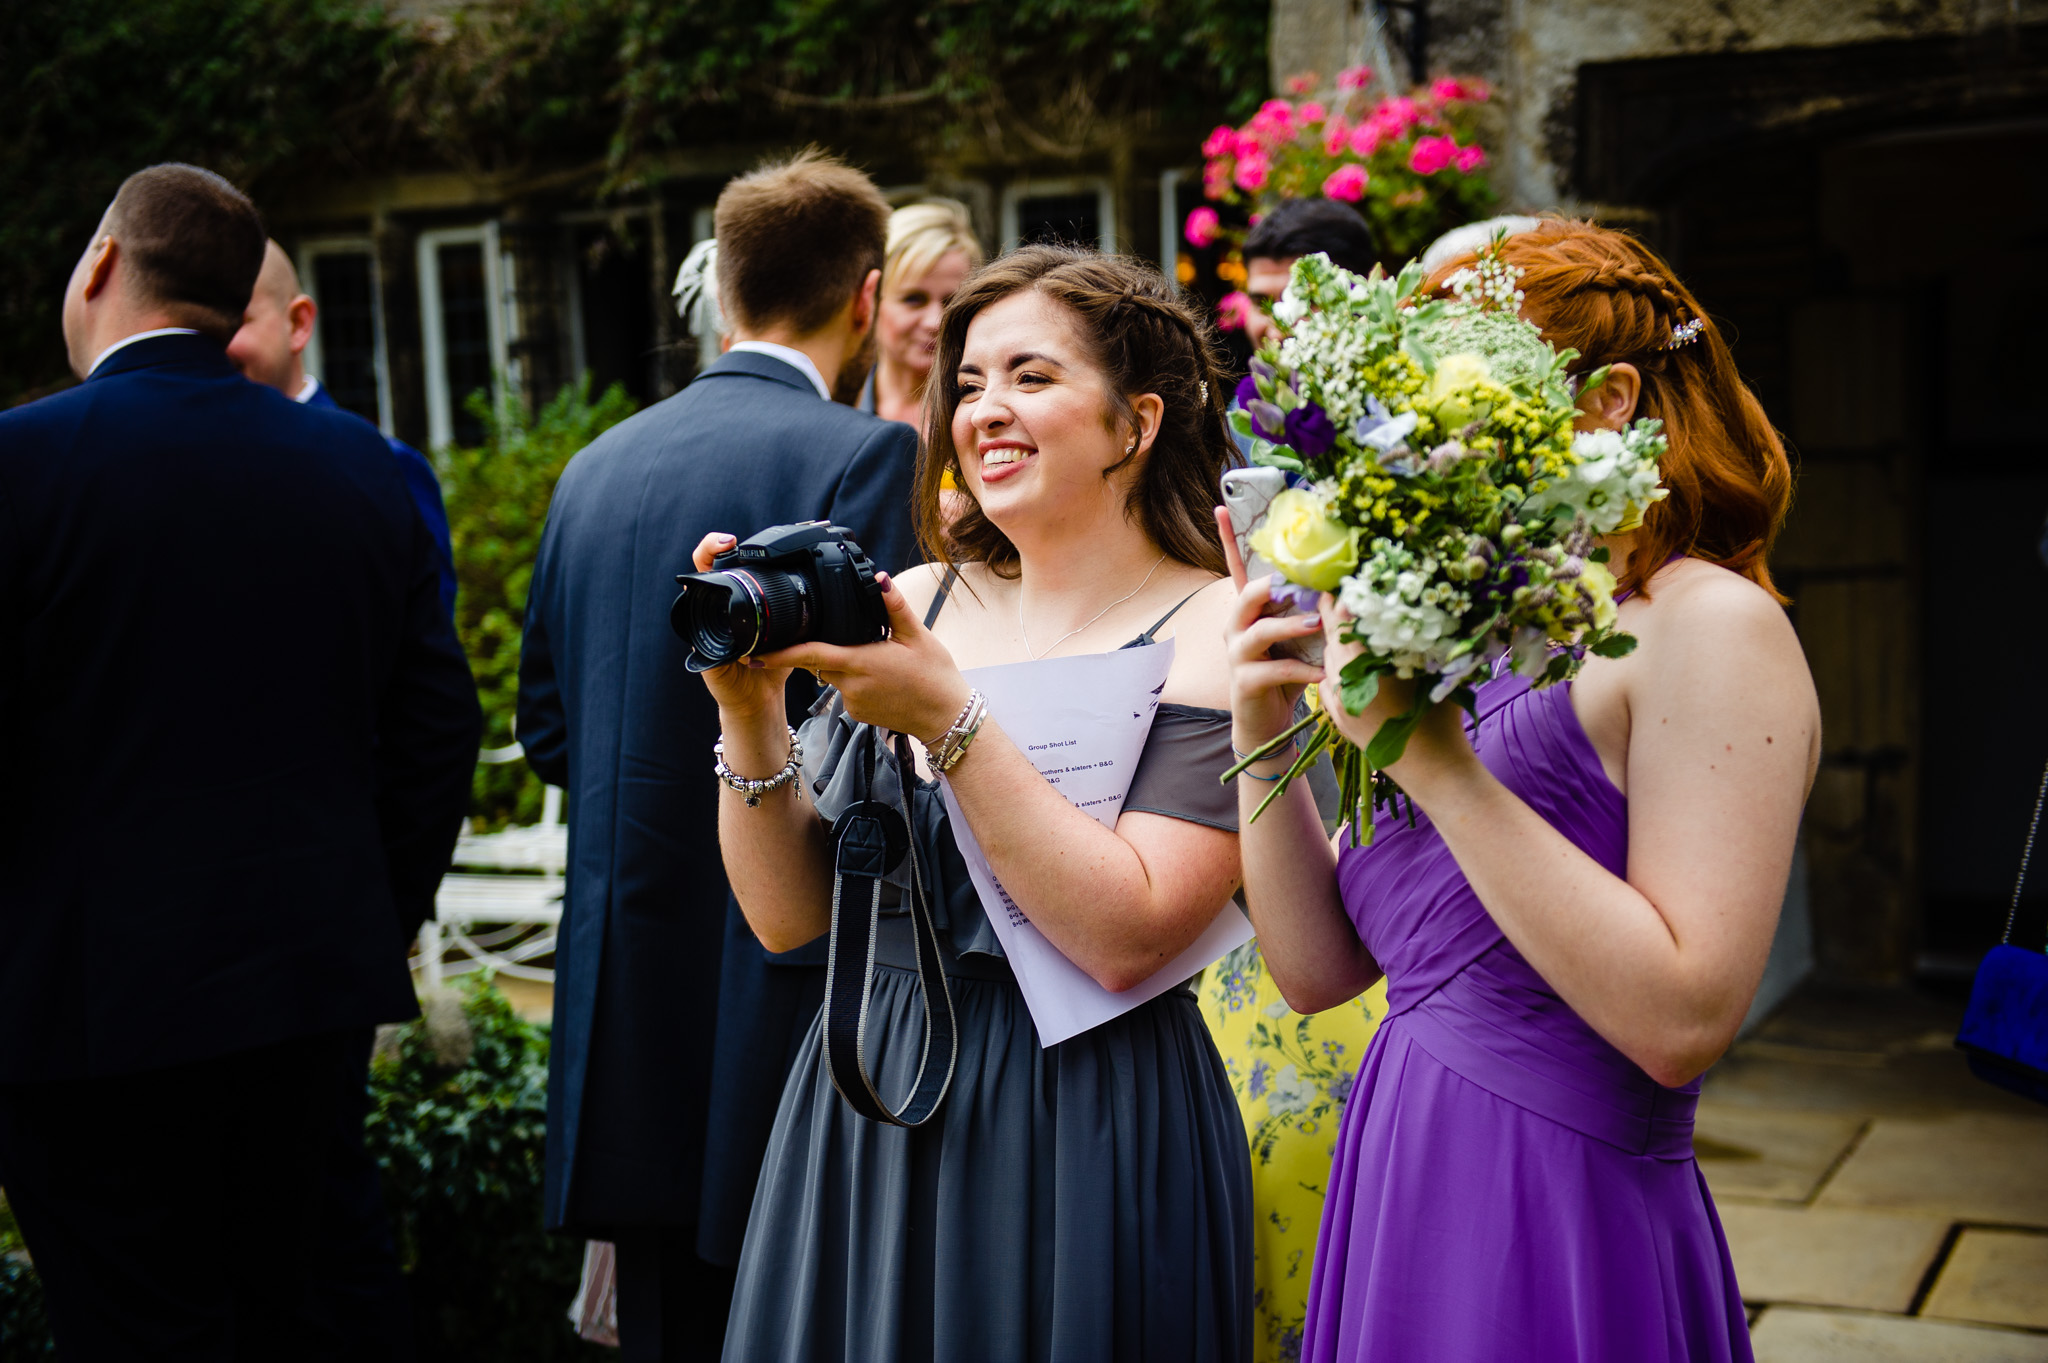 Bridesmaid practices her skills with a camera